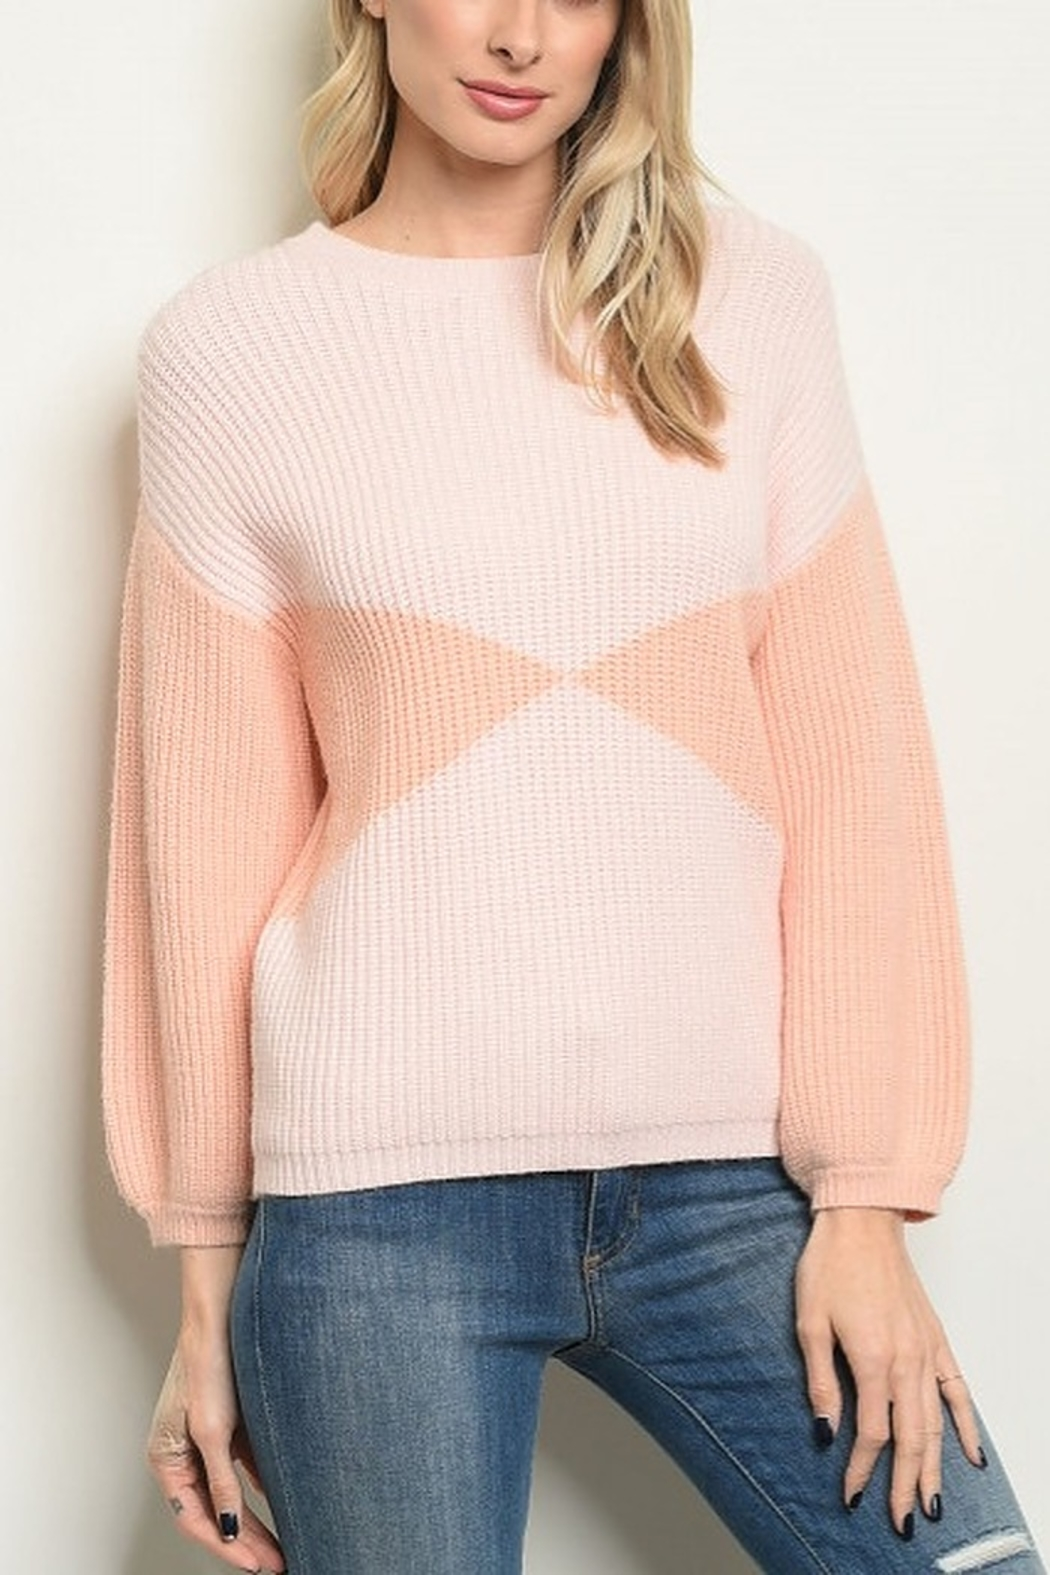 Lyn -Maree's Pinky Peach Sweater - Main Image